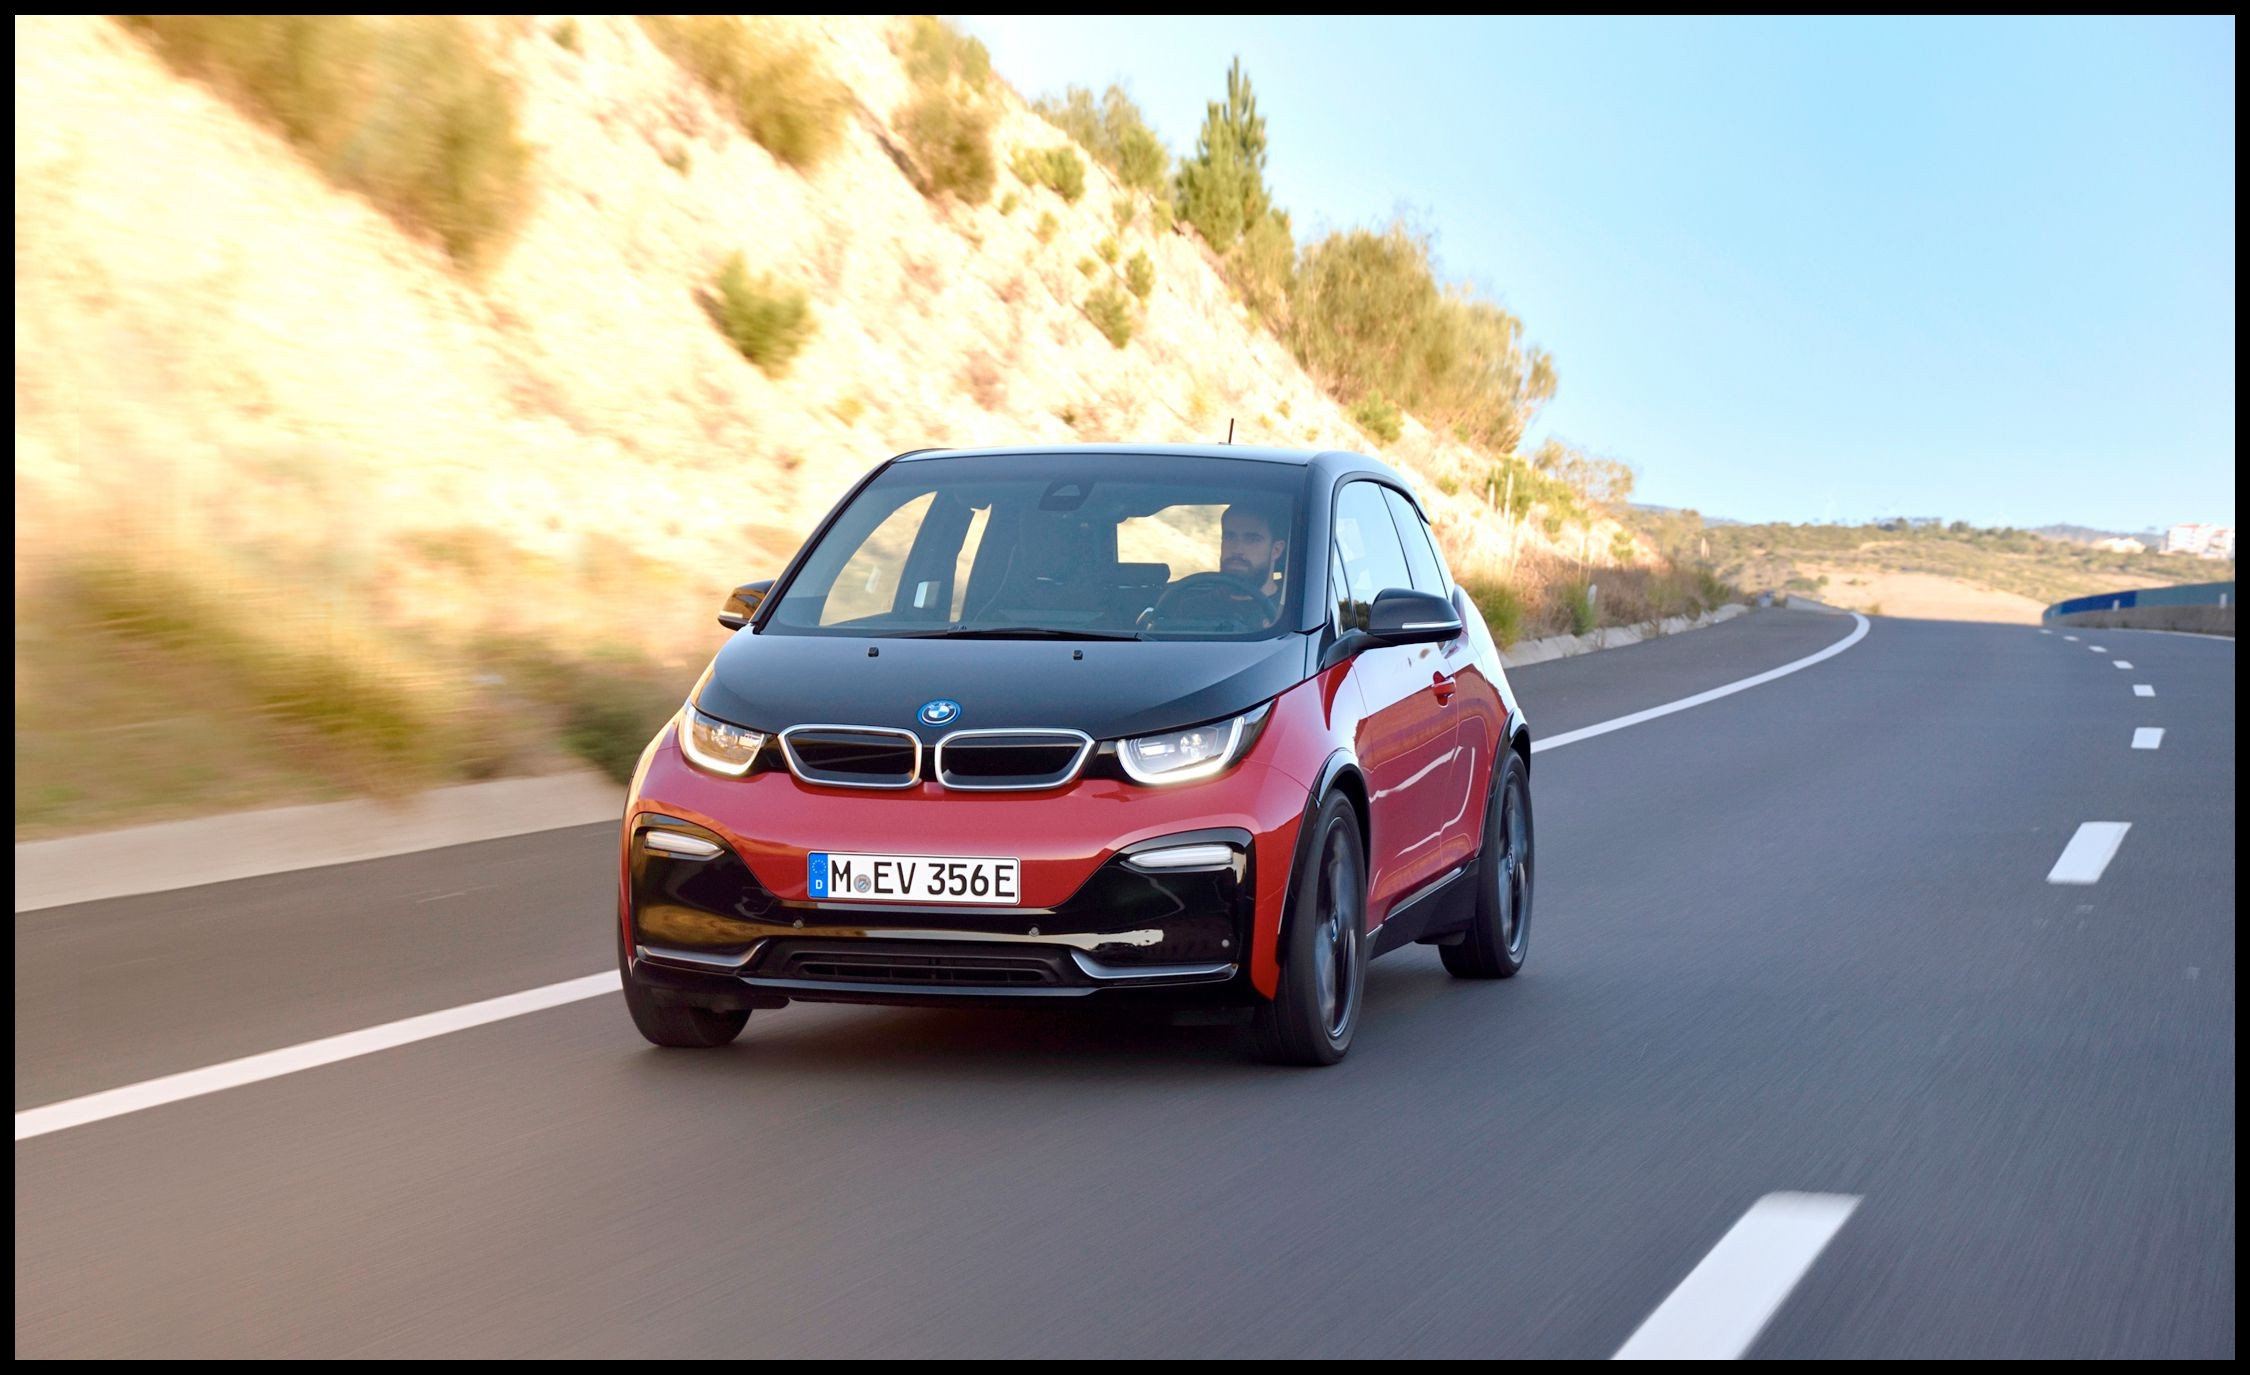 2019 Bmw I3 Battery Lovely Bmw I3 Reviews Bmw I3 Price S and Specs